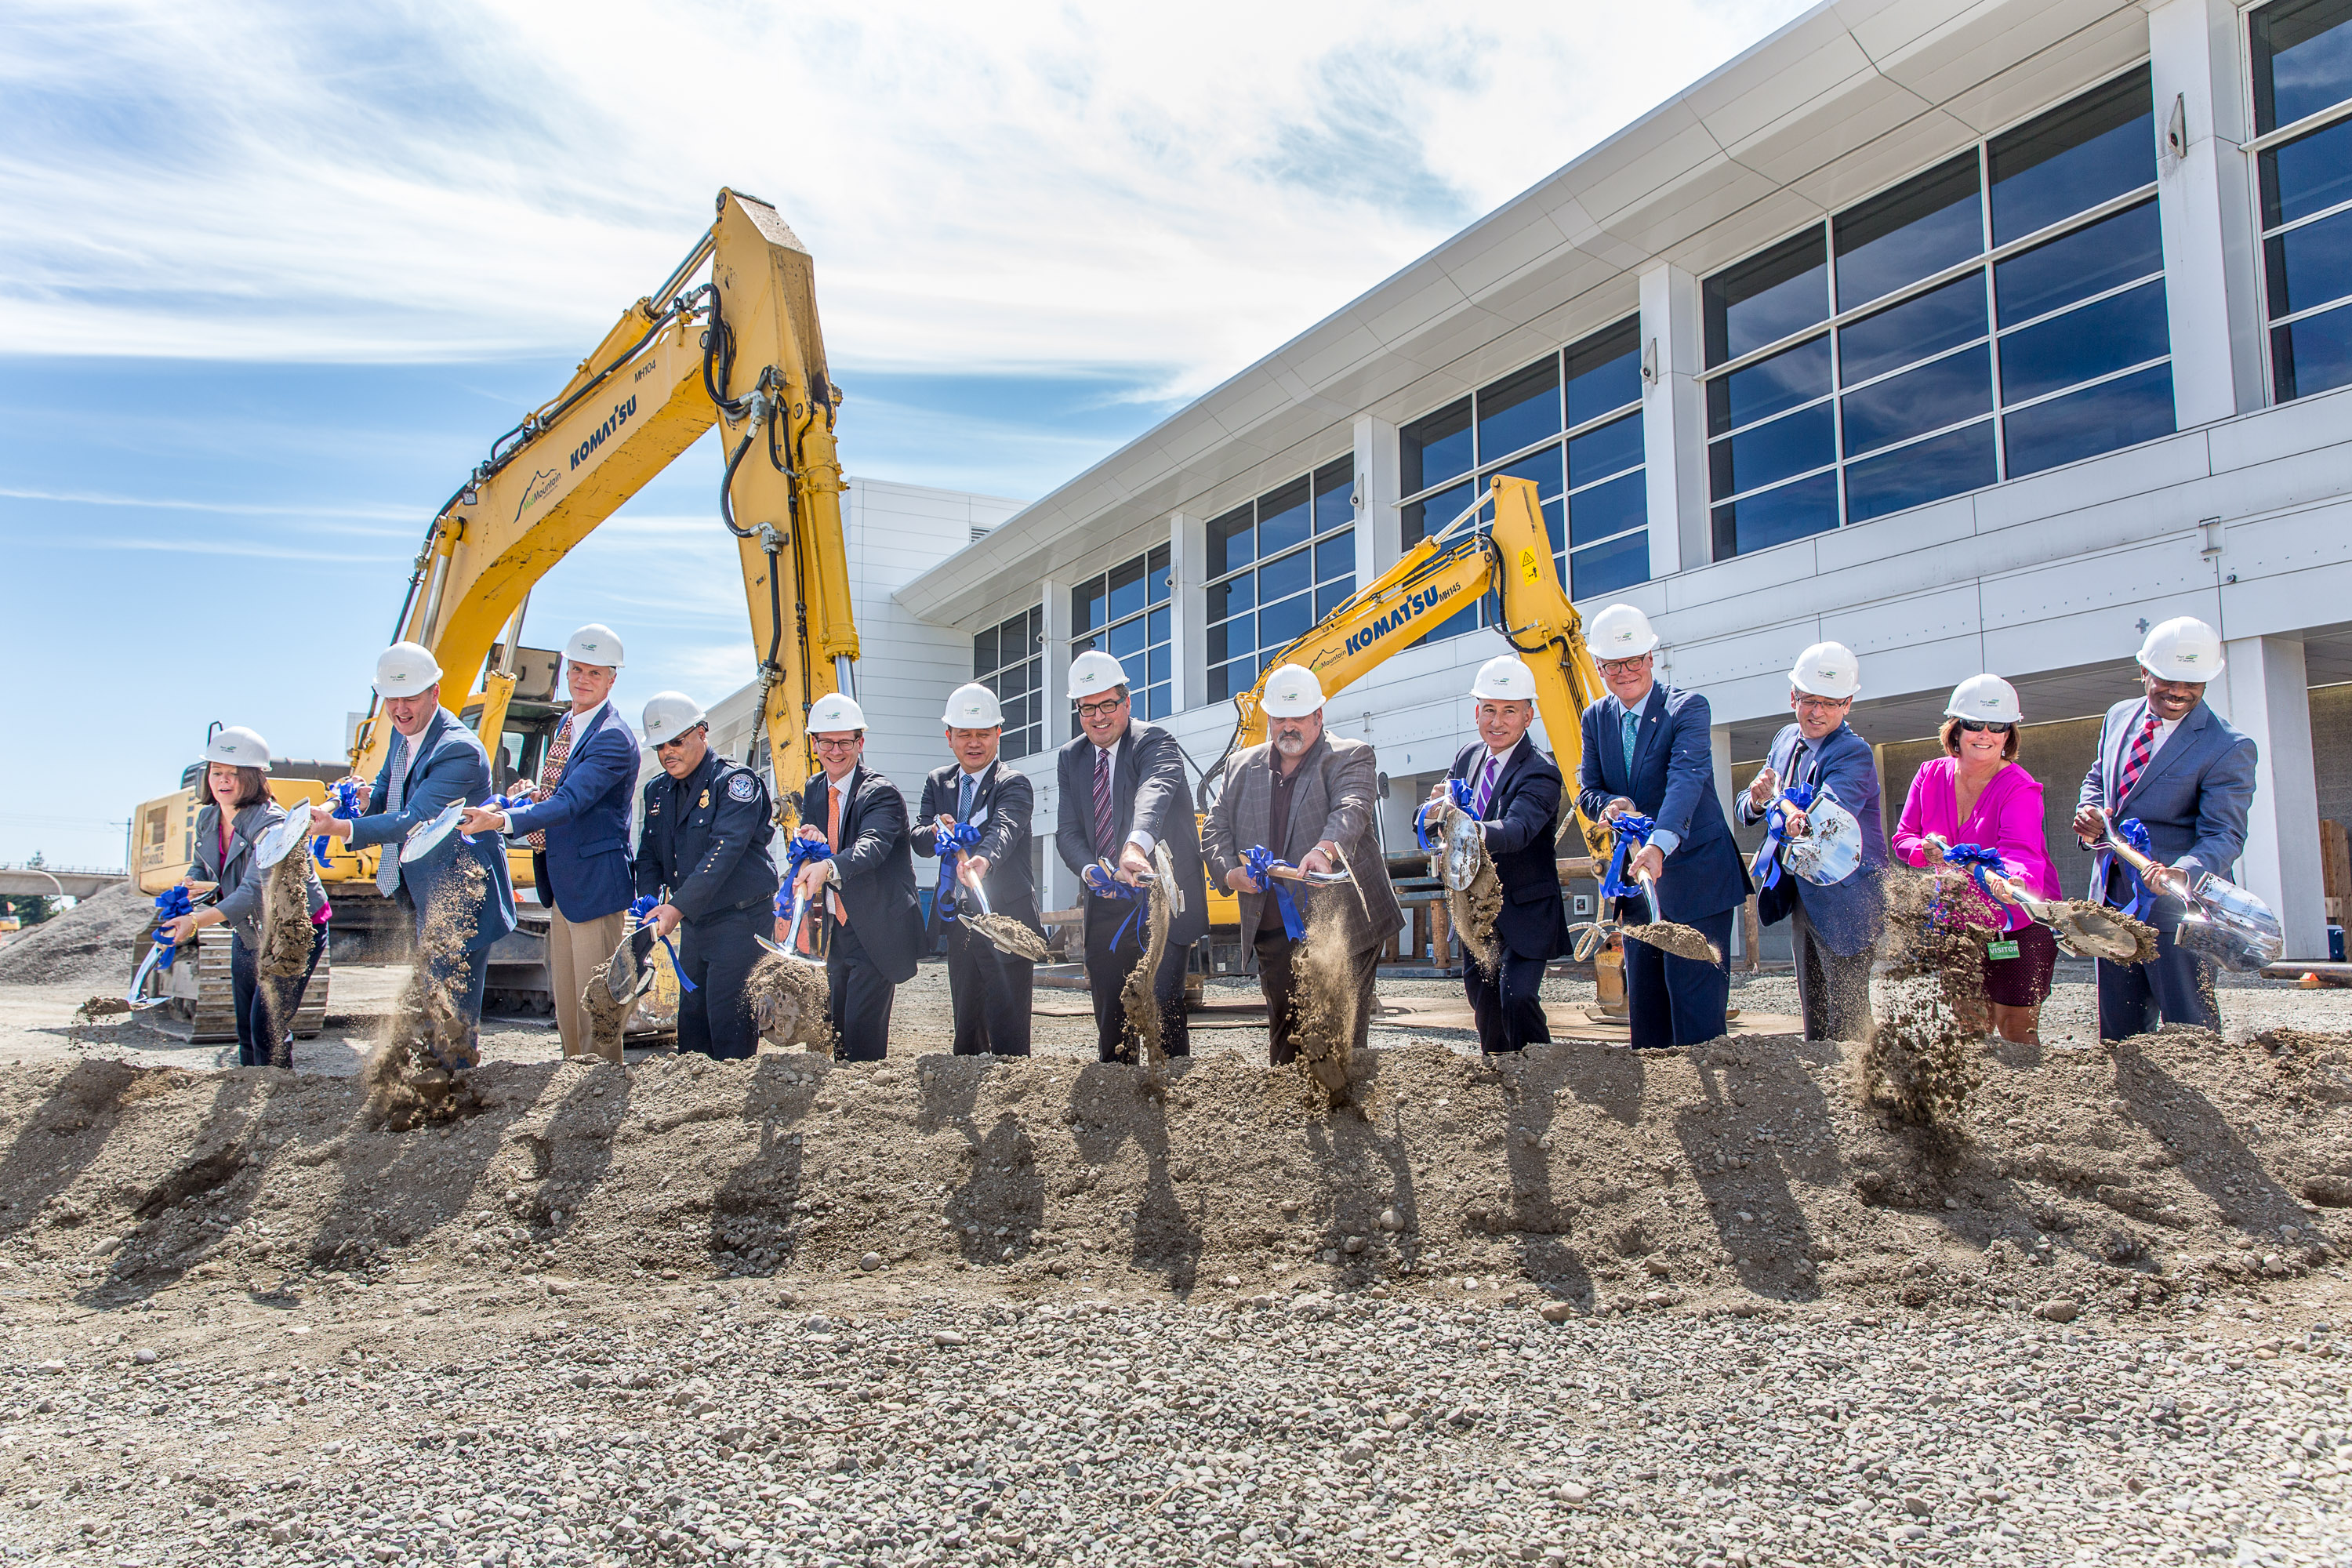 Leaders participate in ground breaking